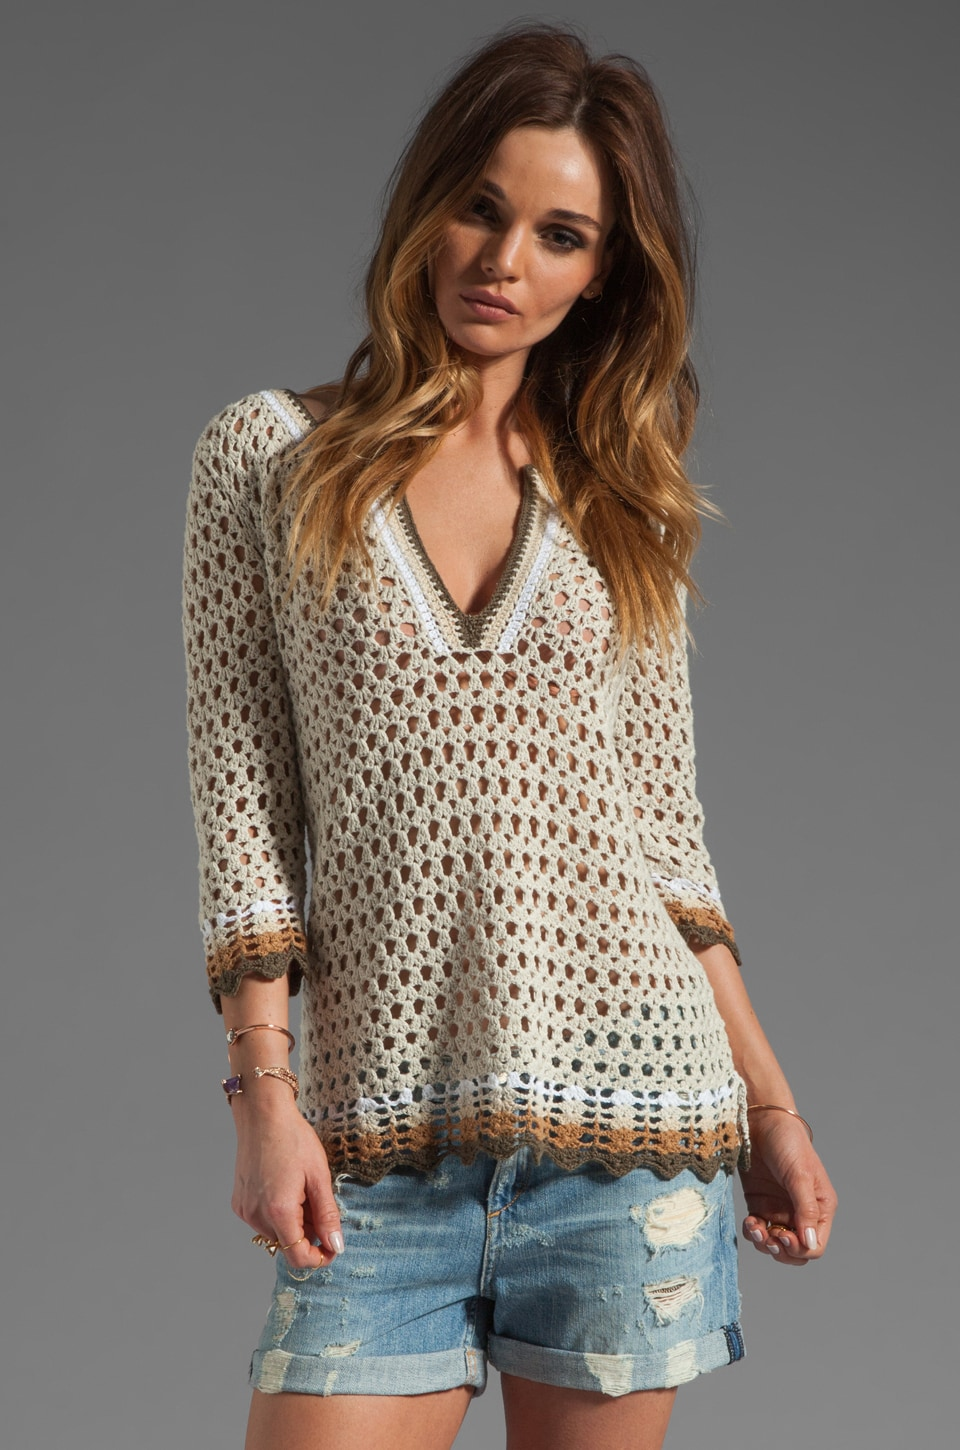 Autumn Cashmere Crochet Slash Neck Tunic in Hemp/Neutrals